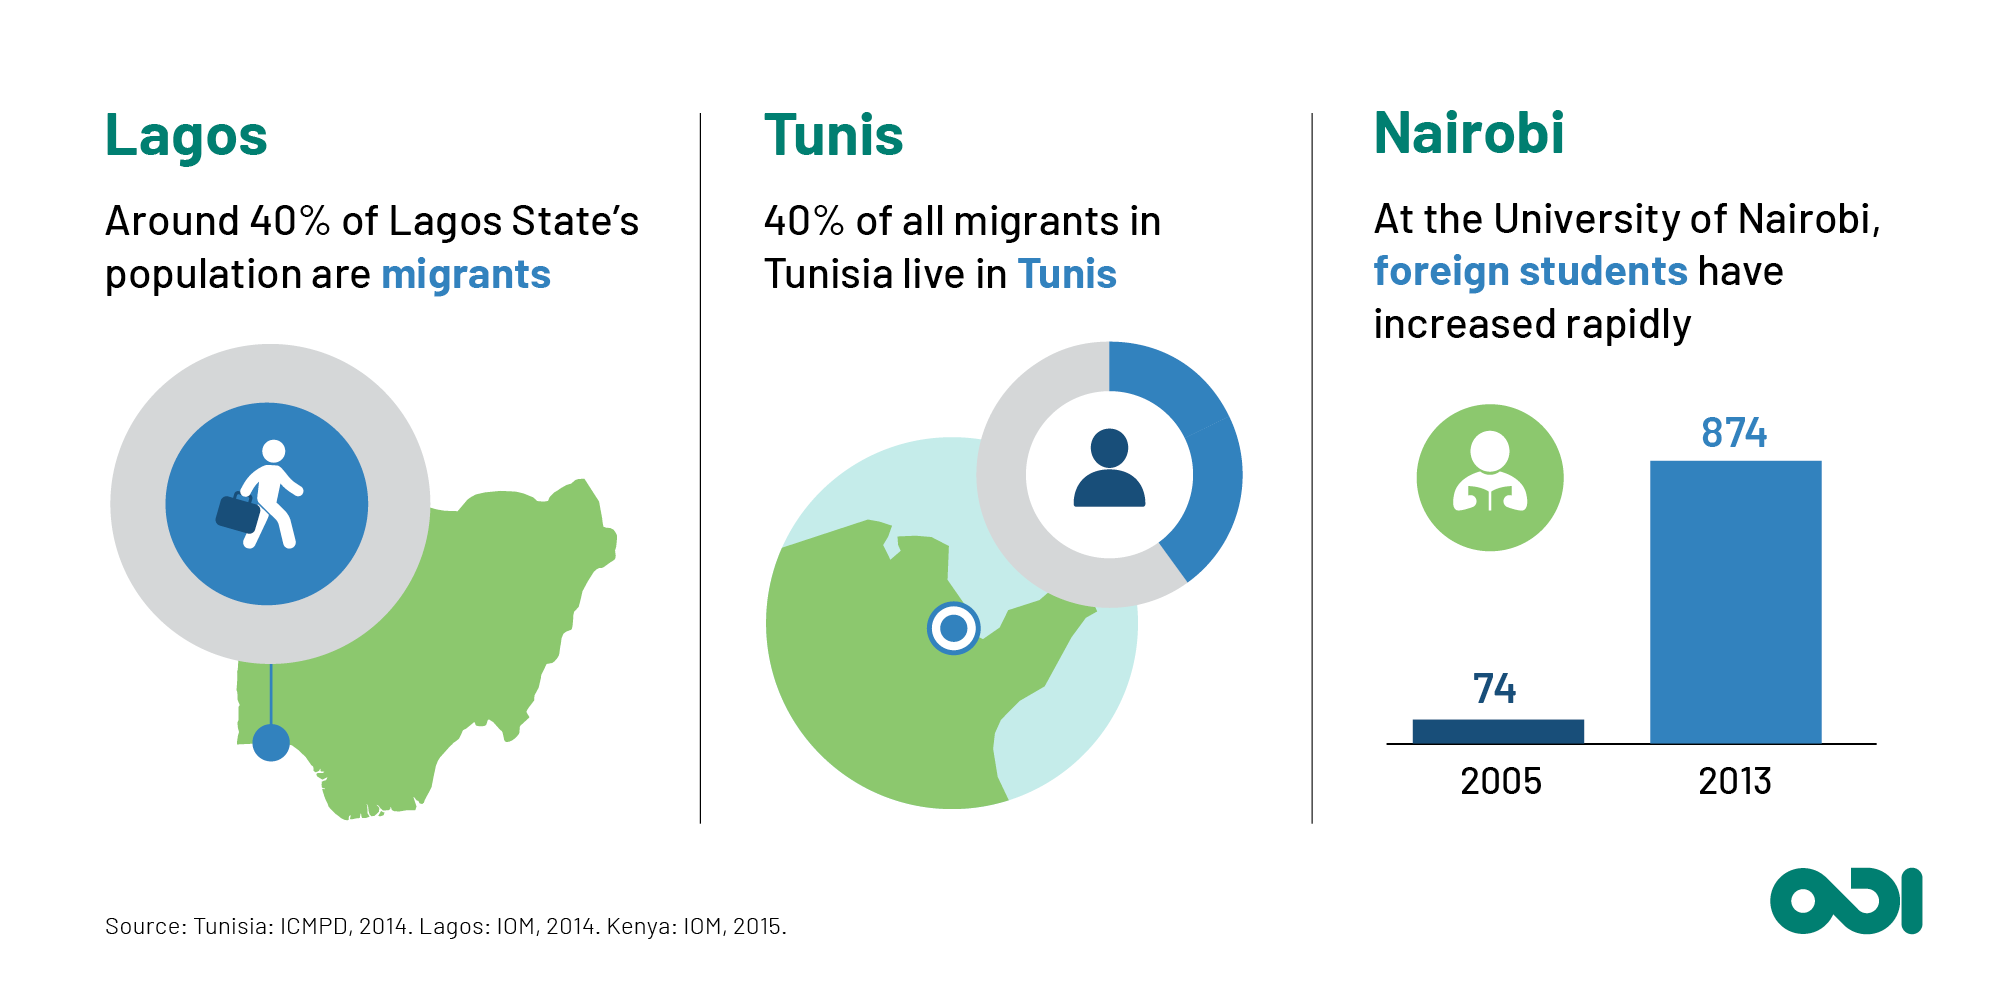 Infographic: the proportion of migrants in Lagos, Tunis and Nairobi.